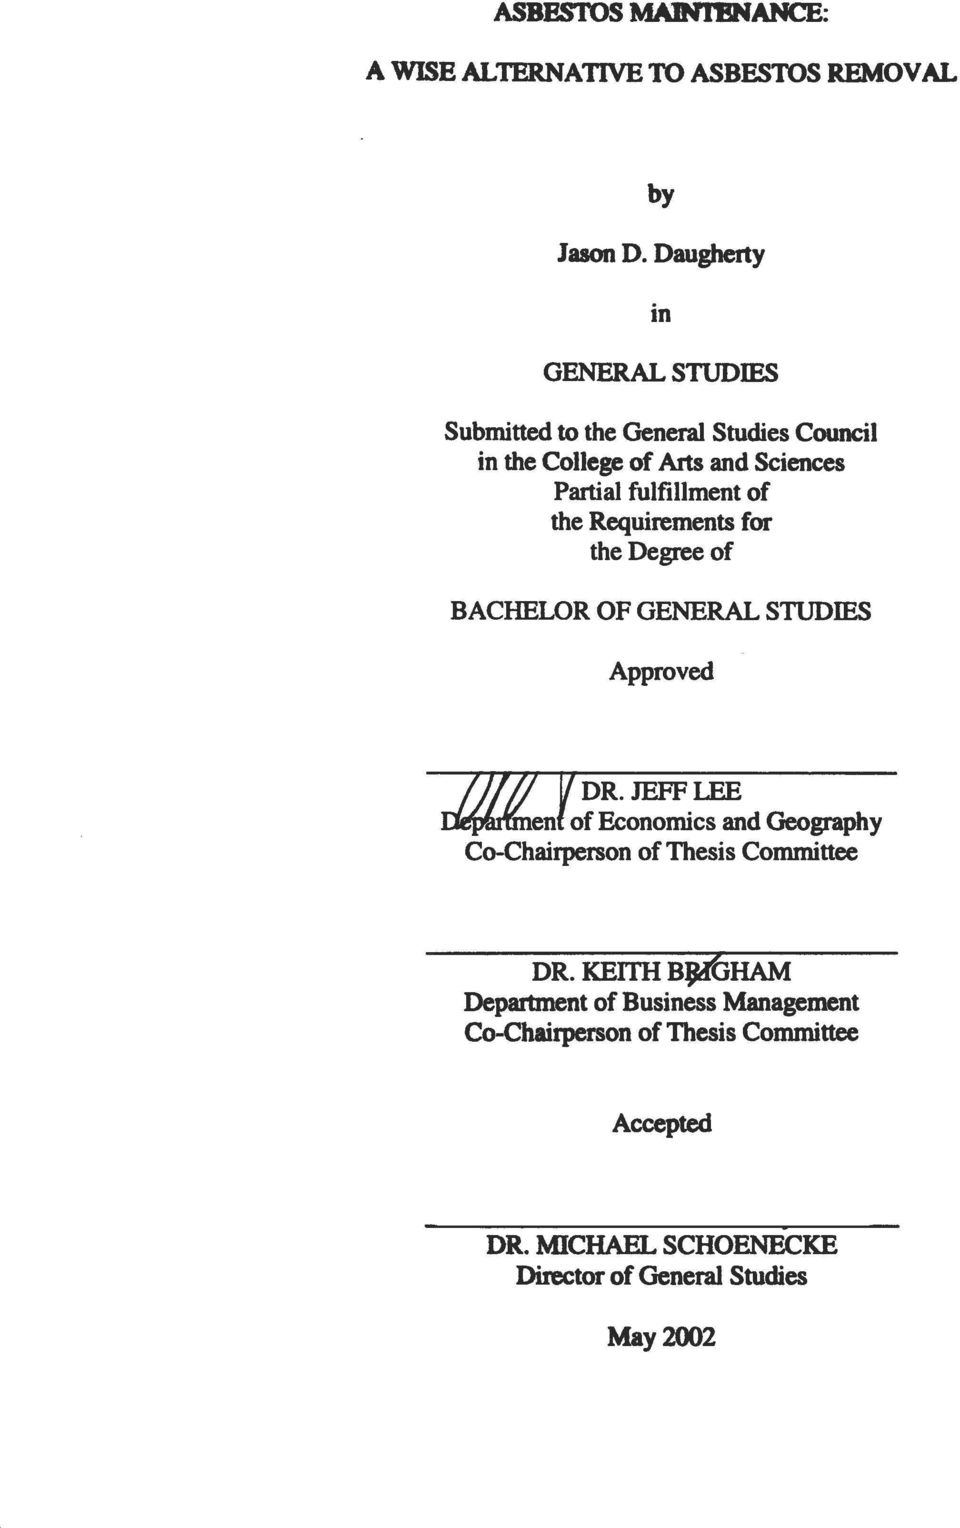 of the Requirements for the Degree of BACHELOROFGENERALSTUDIES Approved m Yc DR.